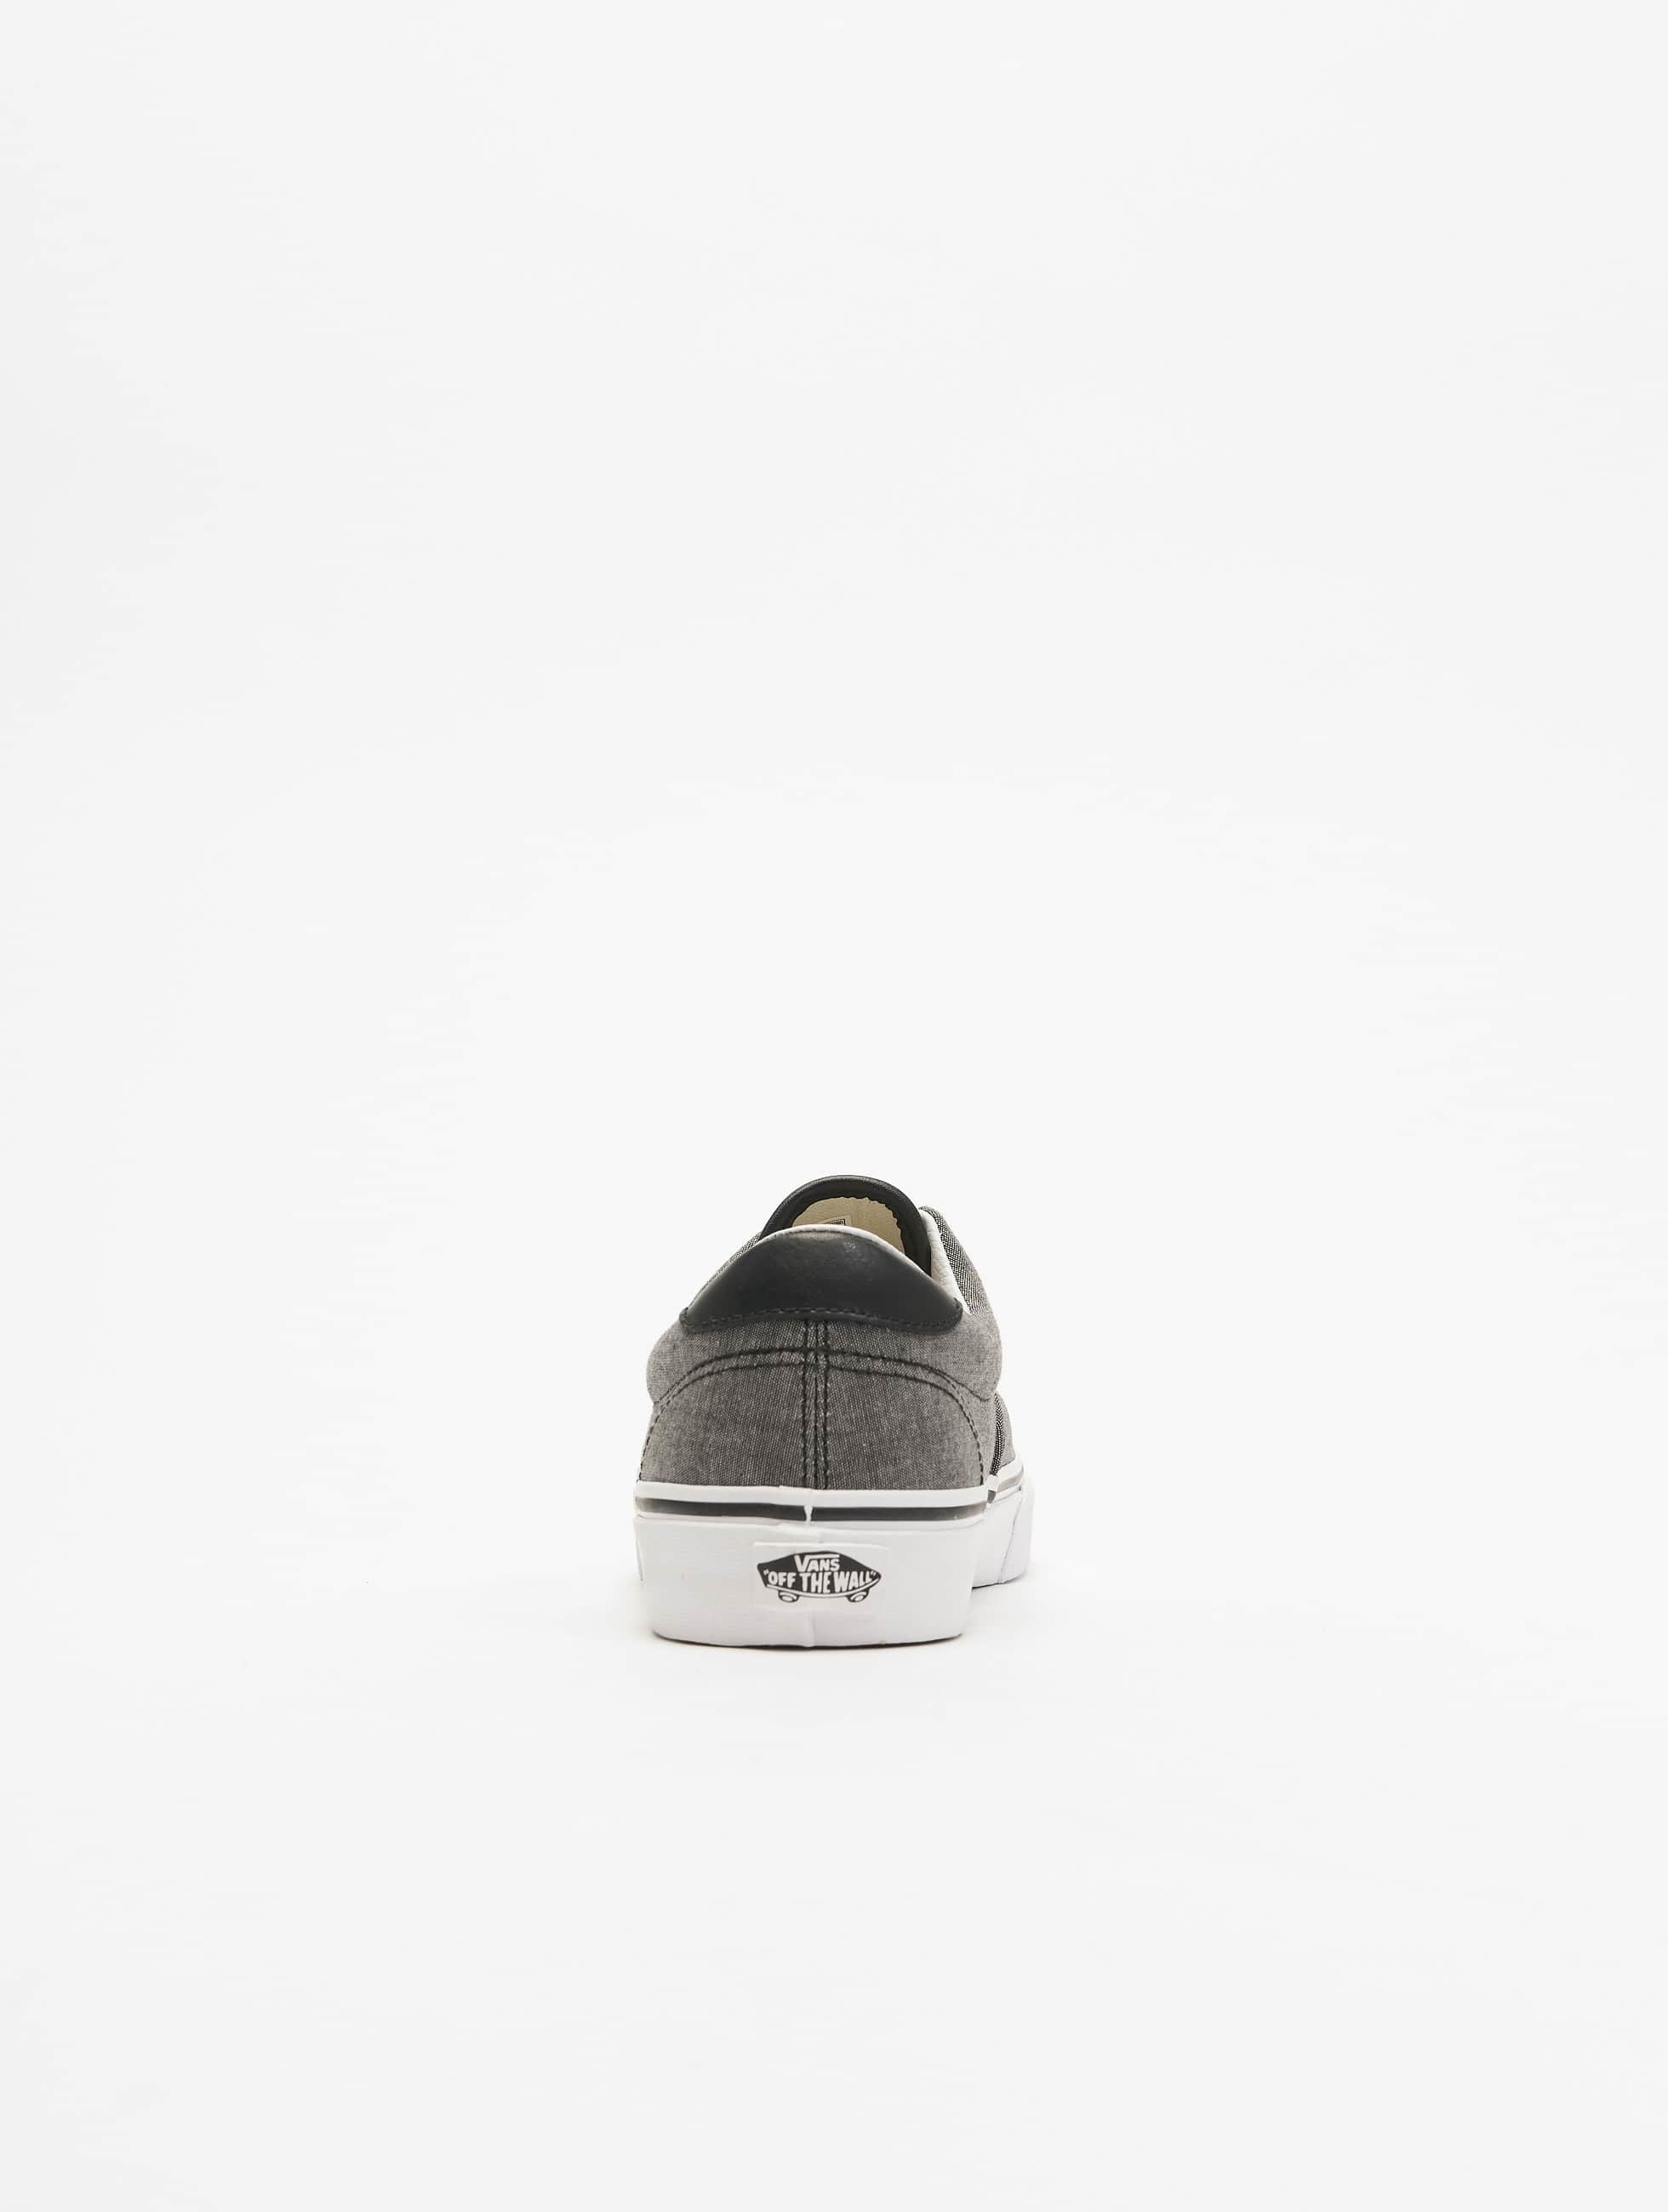 Vans Sneakers Era 59 CL èierna